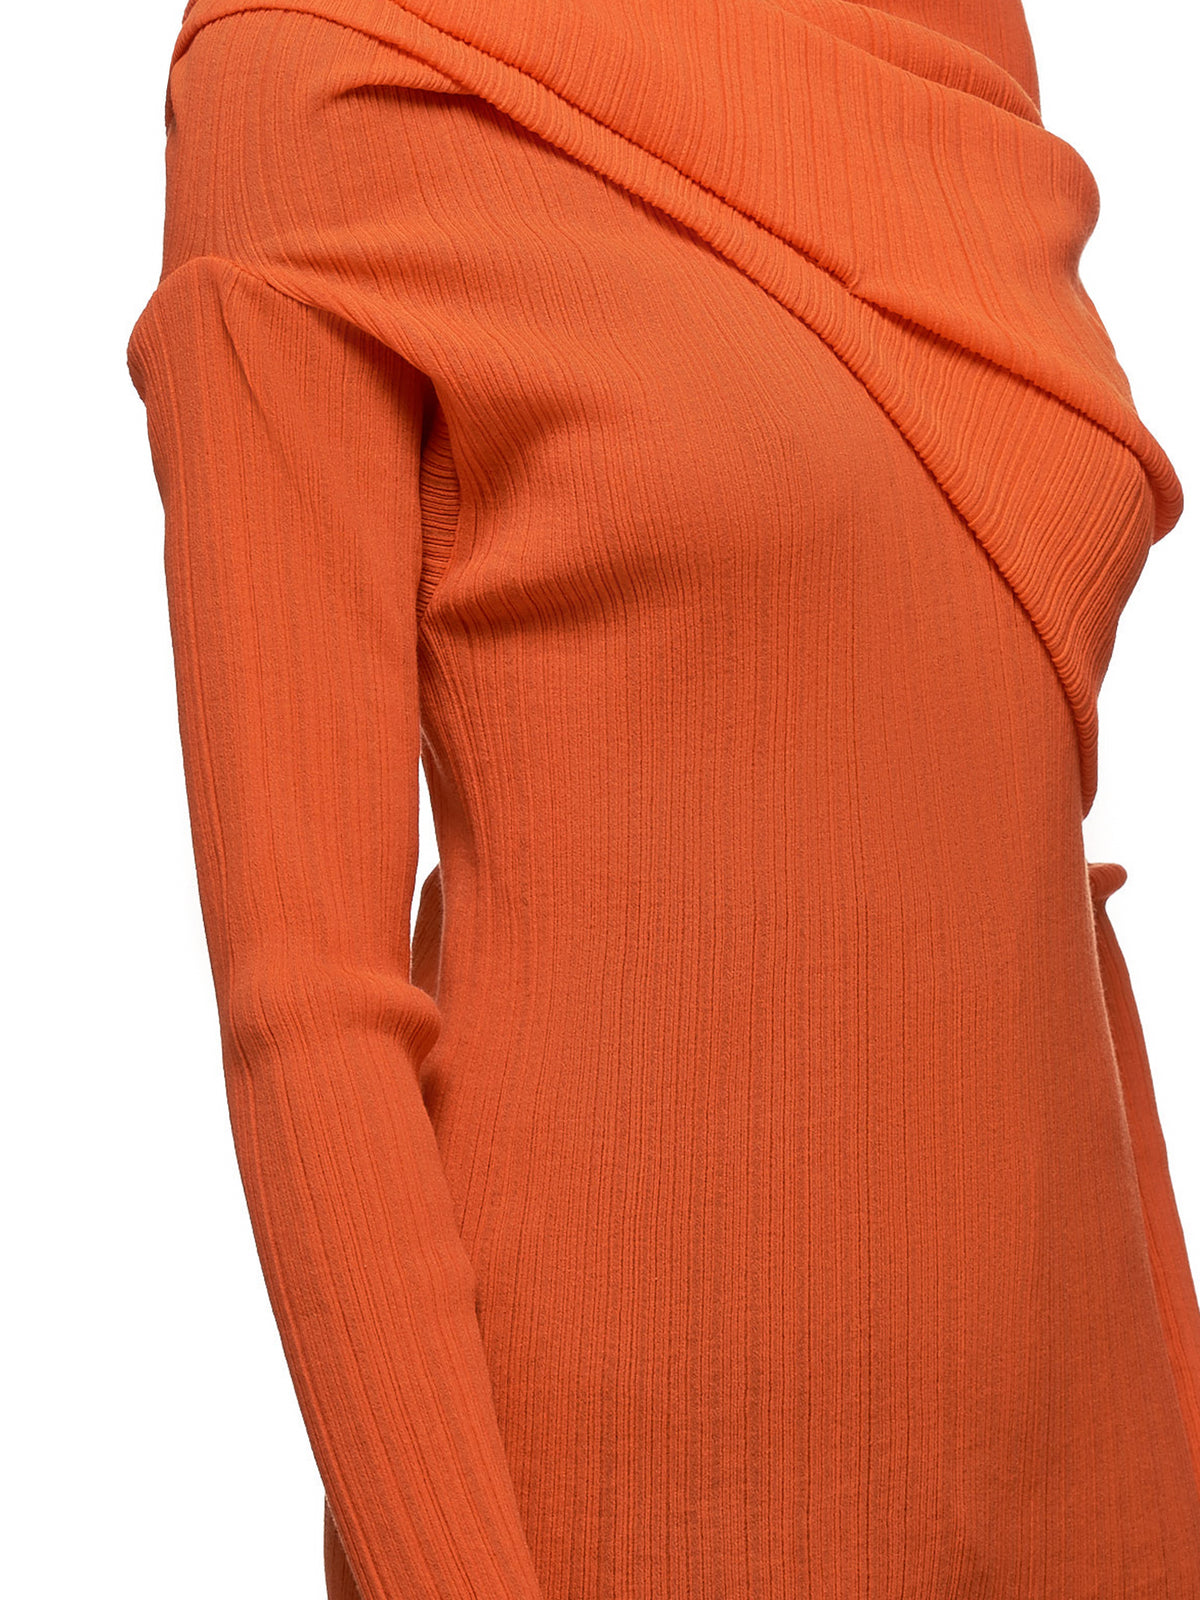 One-Shoulder Top (PJT0019C00928-U6452-ORANGE)